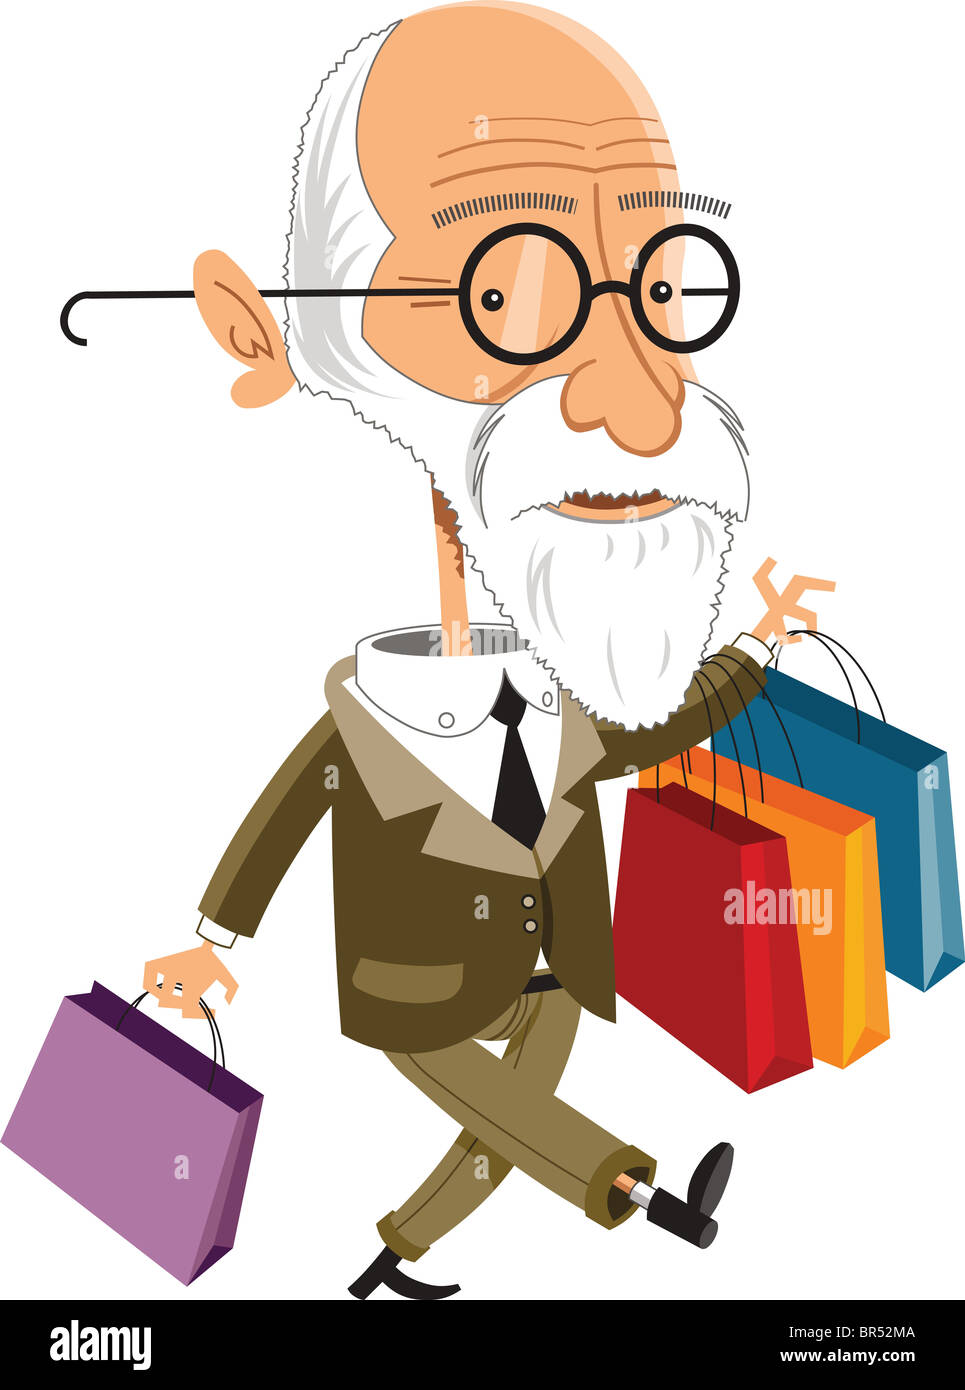 Illustration of a Sigmund Freud walking and holding shopping bags - Stock Image